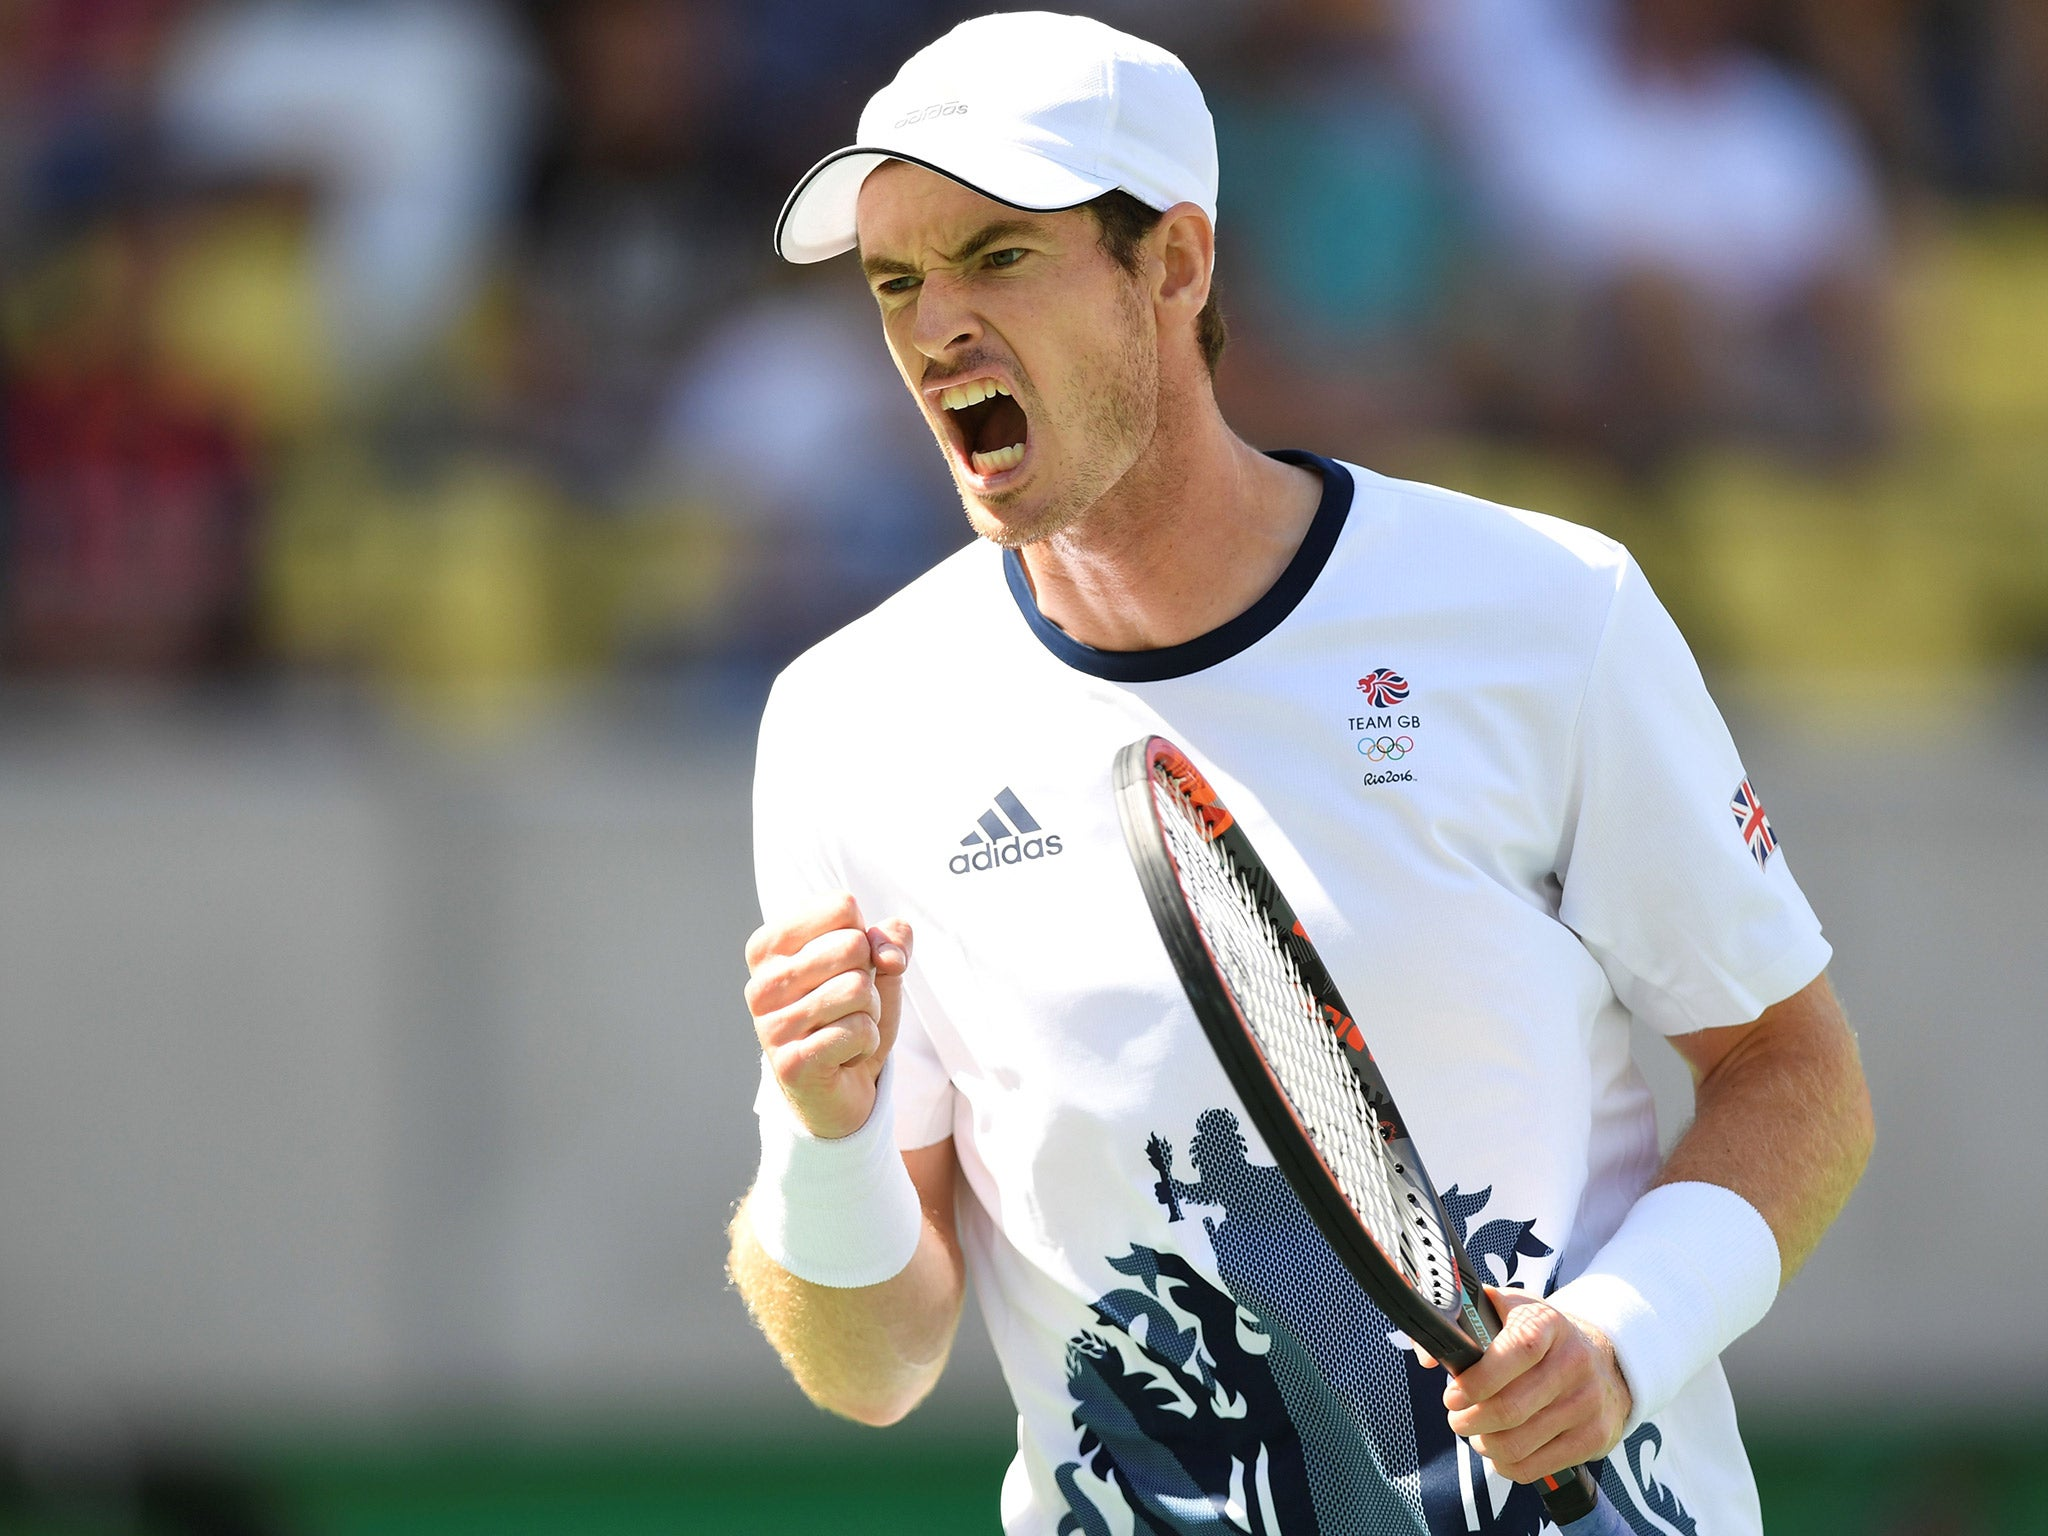 Rio 2016 live: Britain claim rowing gold and silver on 'Super Saturday' as Andy Murray reaches tennis final